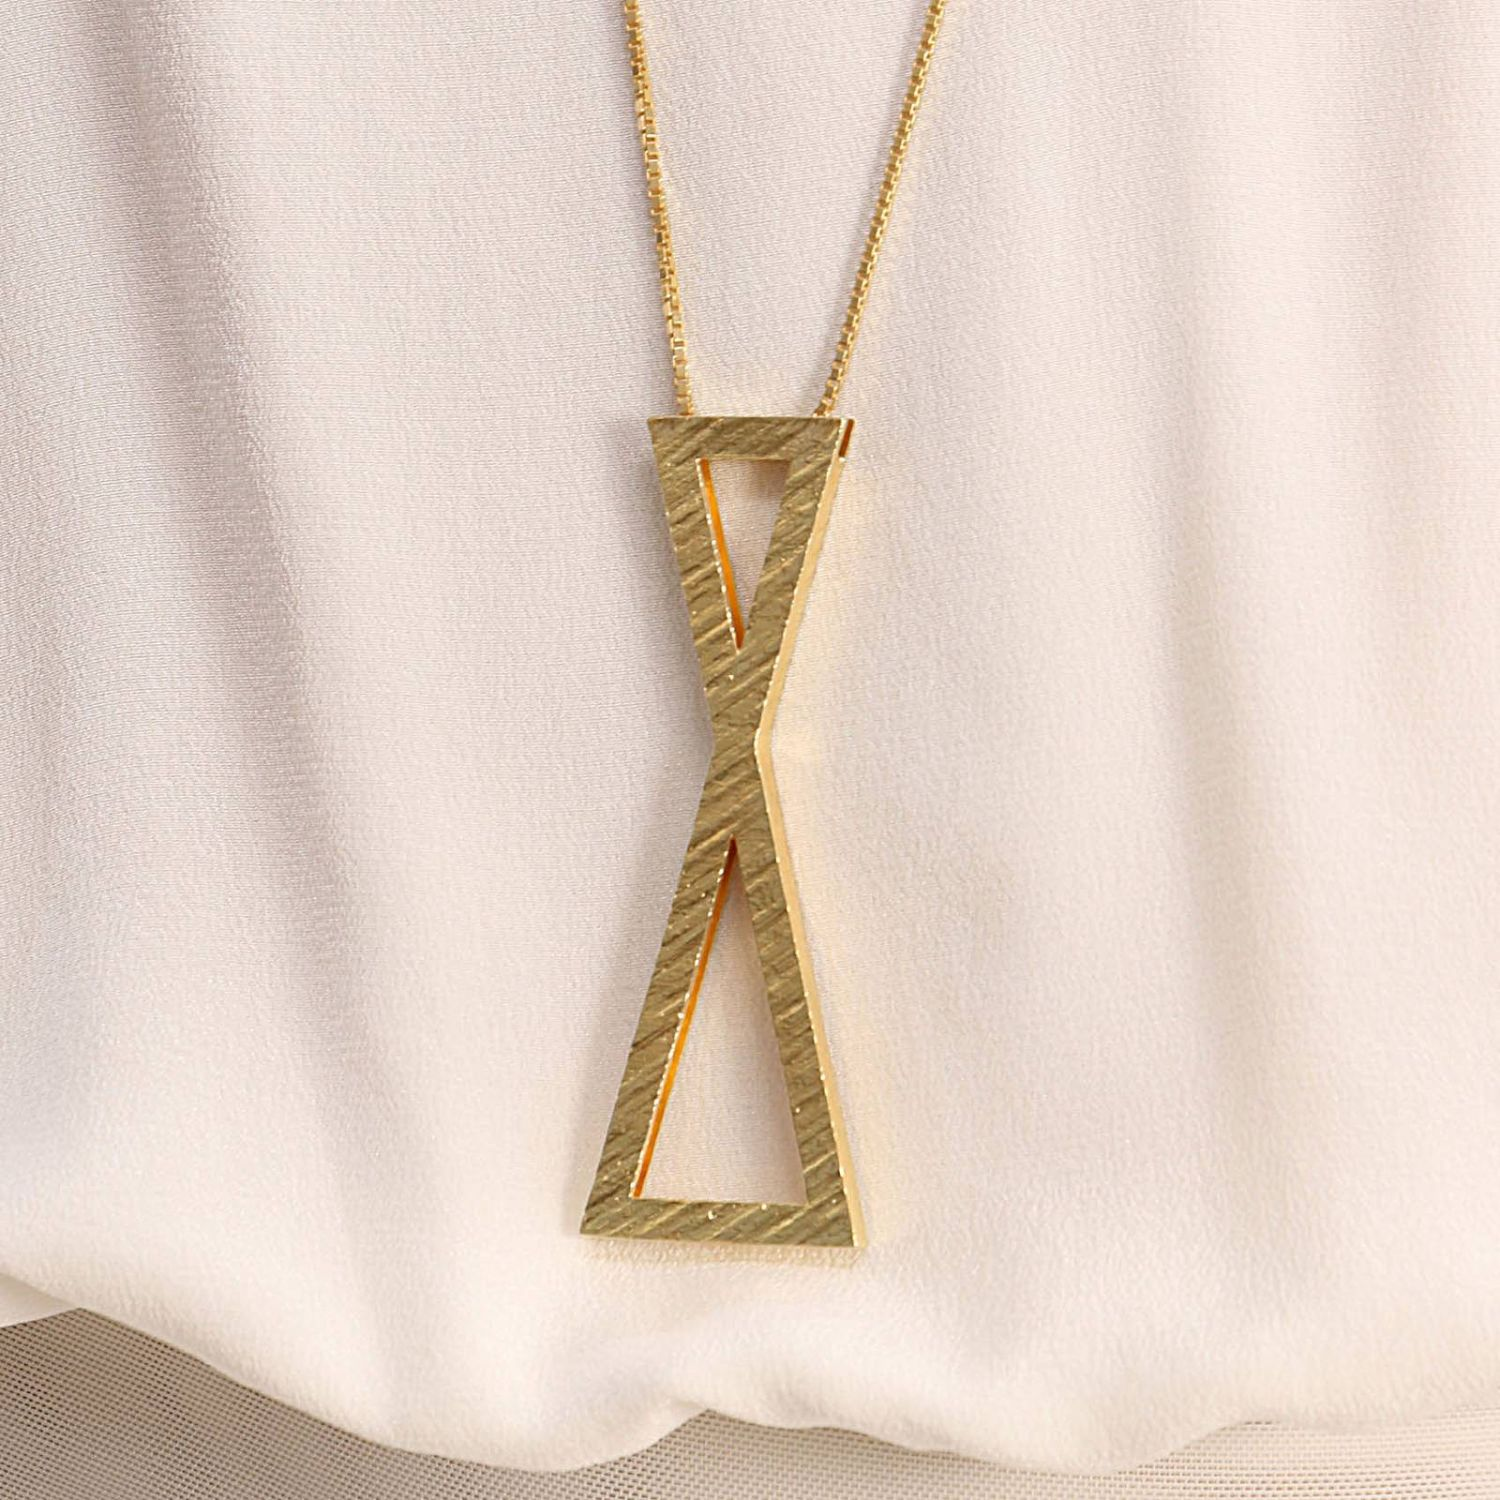 Collana Big clepsydra pendant in argento 925 Linear Collection oro 4